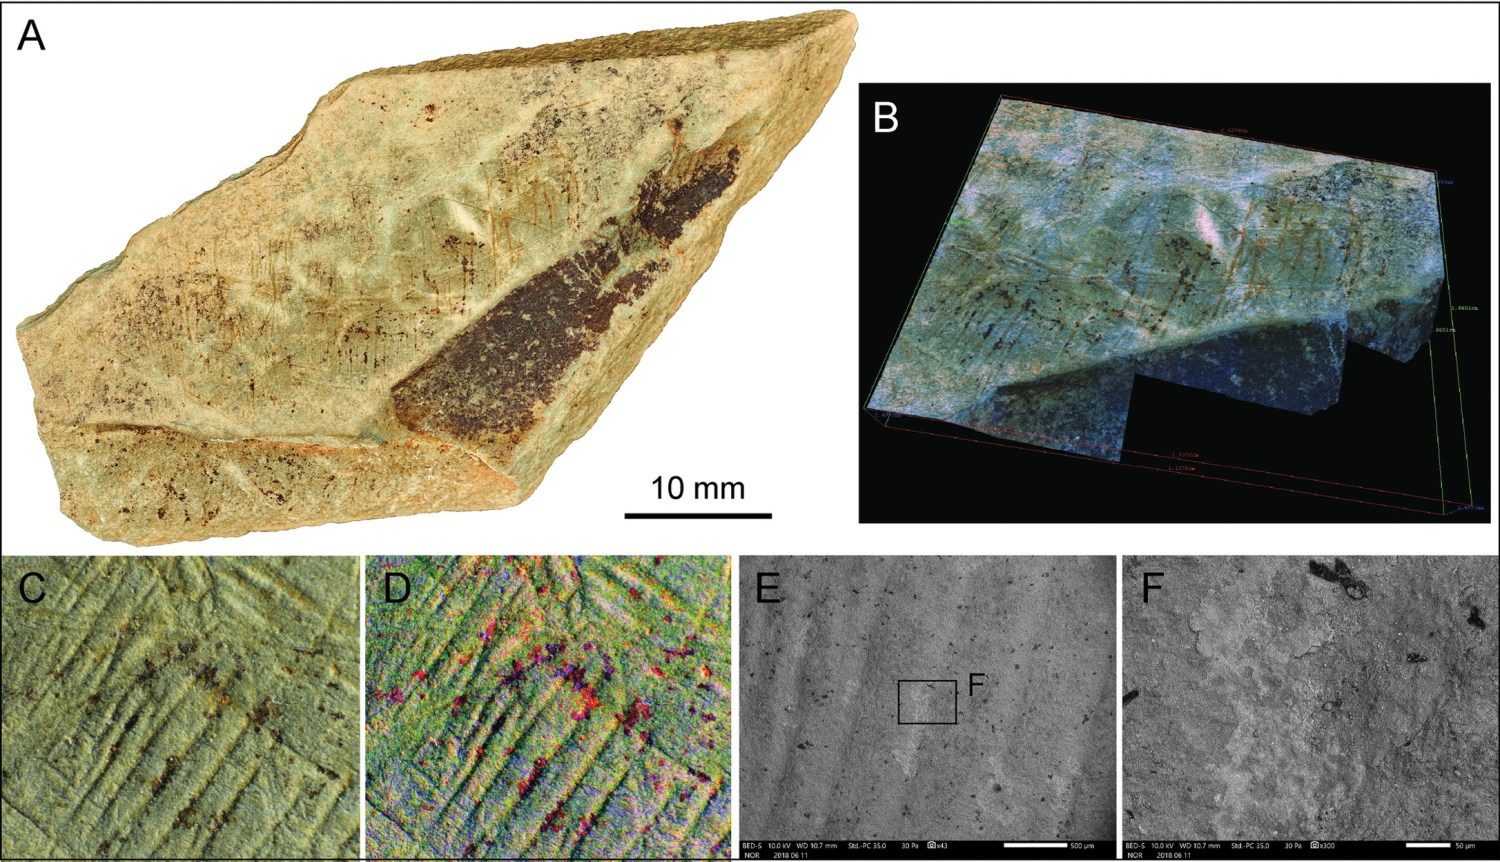 ABOVE Fragment LVE 4395 had patches of what appeared to be red staining on its engraved surfaces. Detailed imaging created during analysis of the marks highlighted the different coloration, but ultimately no difference in mineral make-up was identified and unlike on plaquettes from continental Europe the Les Varines finds are not thought to have been enhanced with pigment.